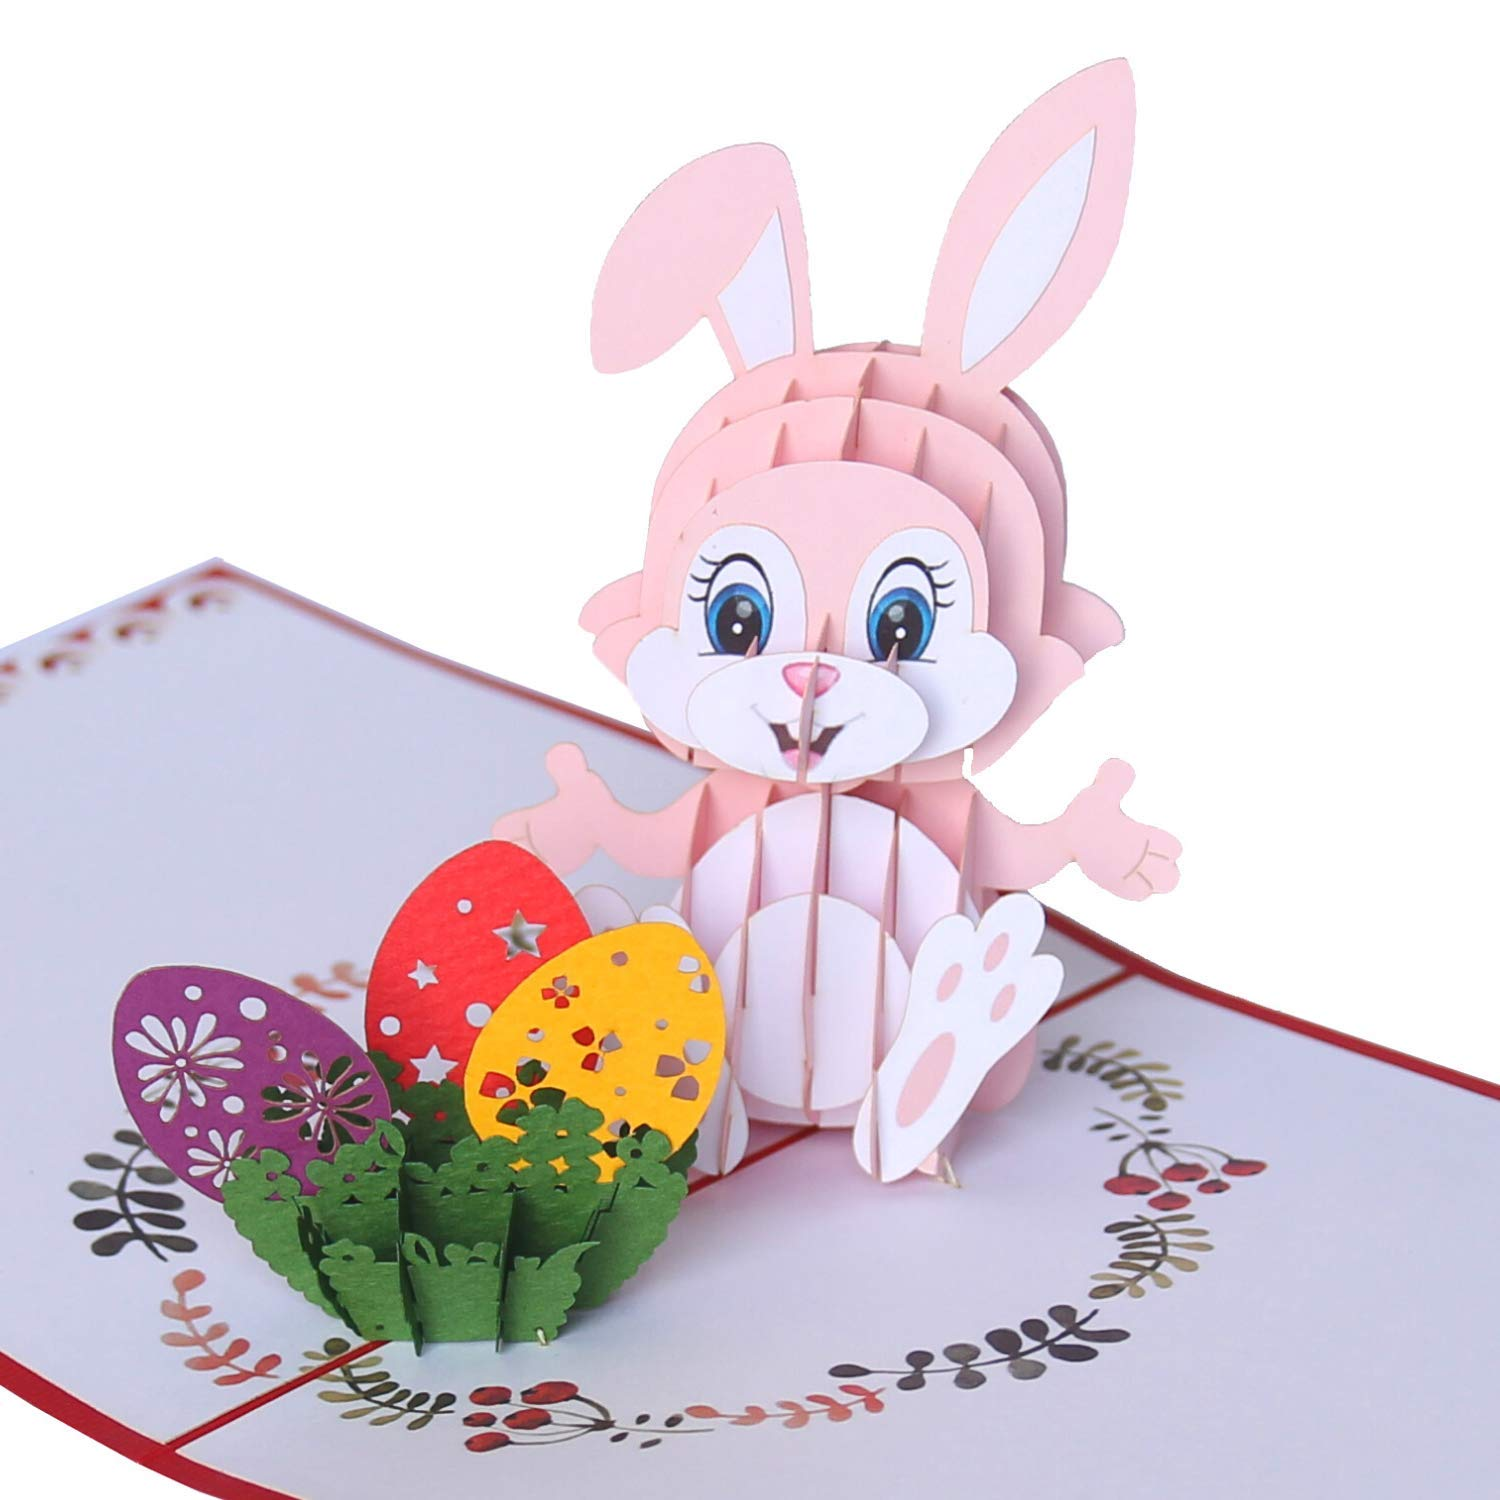 CUTEPOPUP Easter Popup Card with Funny Face Bunny, Vibrant Colors, Meticulous Details by Laser Cut for Grand-kids, Children, Your Family or Your Loved Ones at Easter